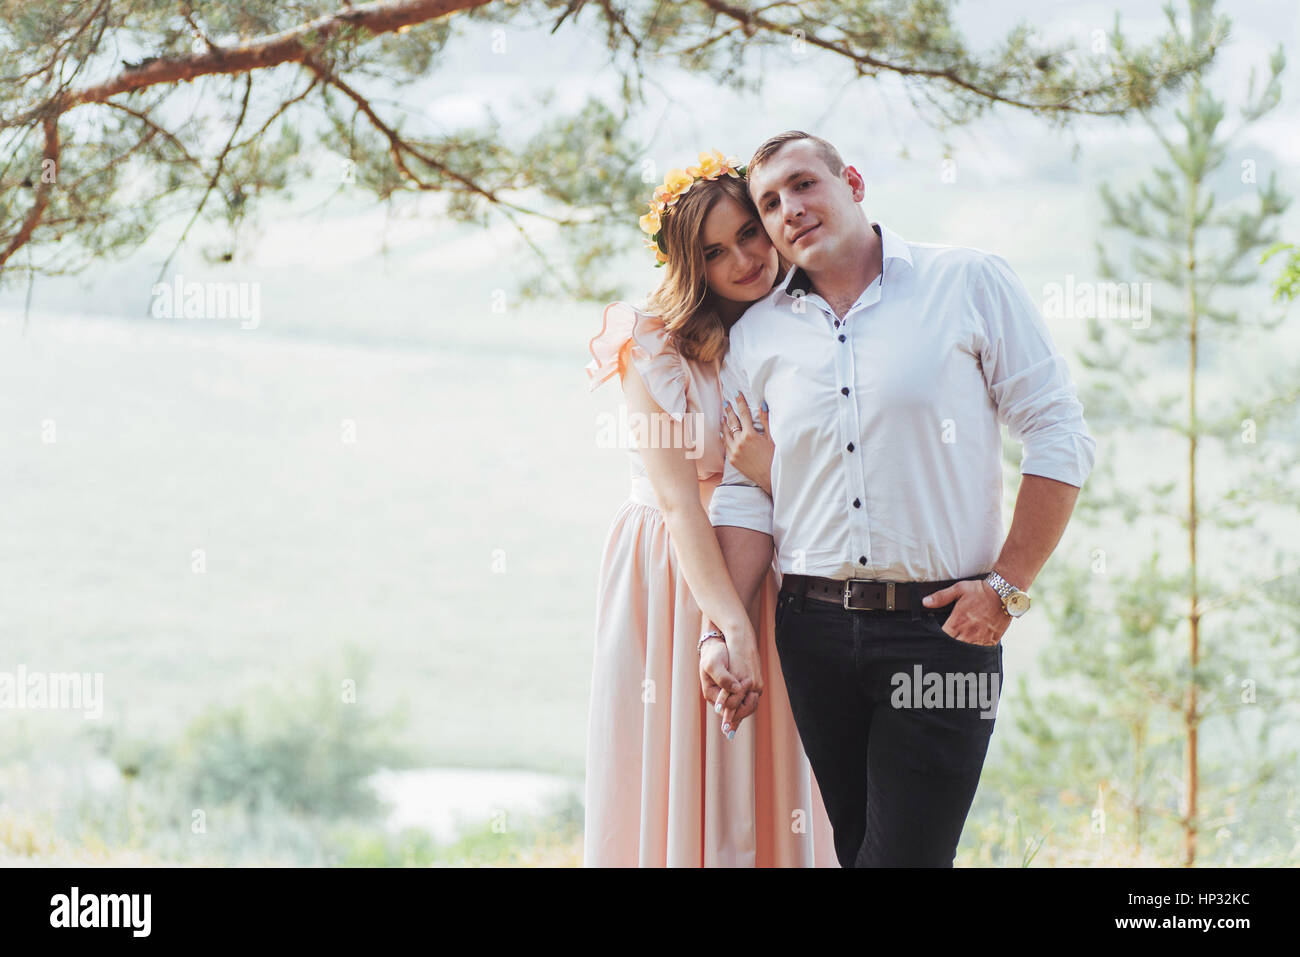 Happy young couple in a pine forest in summer - Stock Image